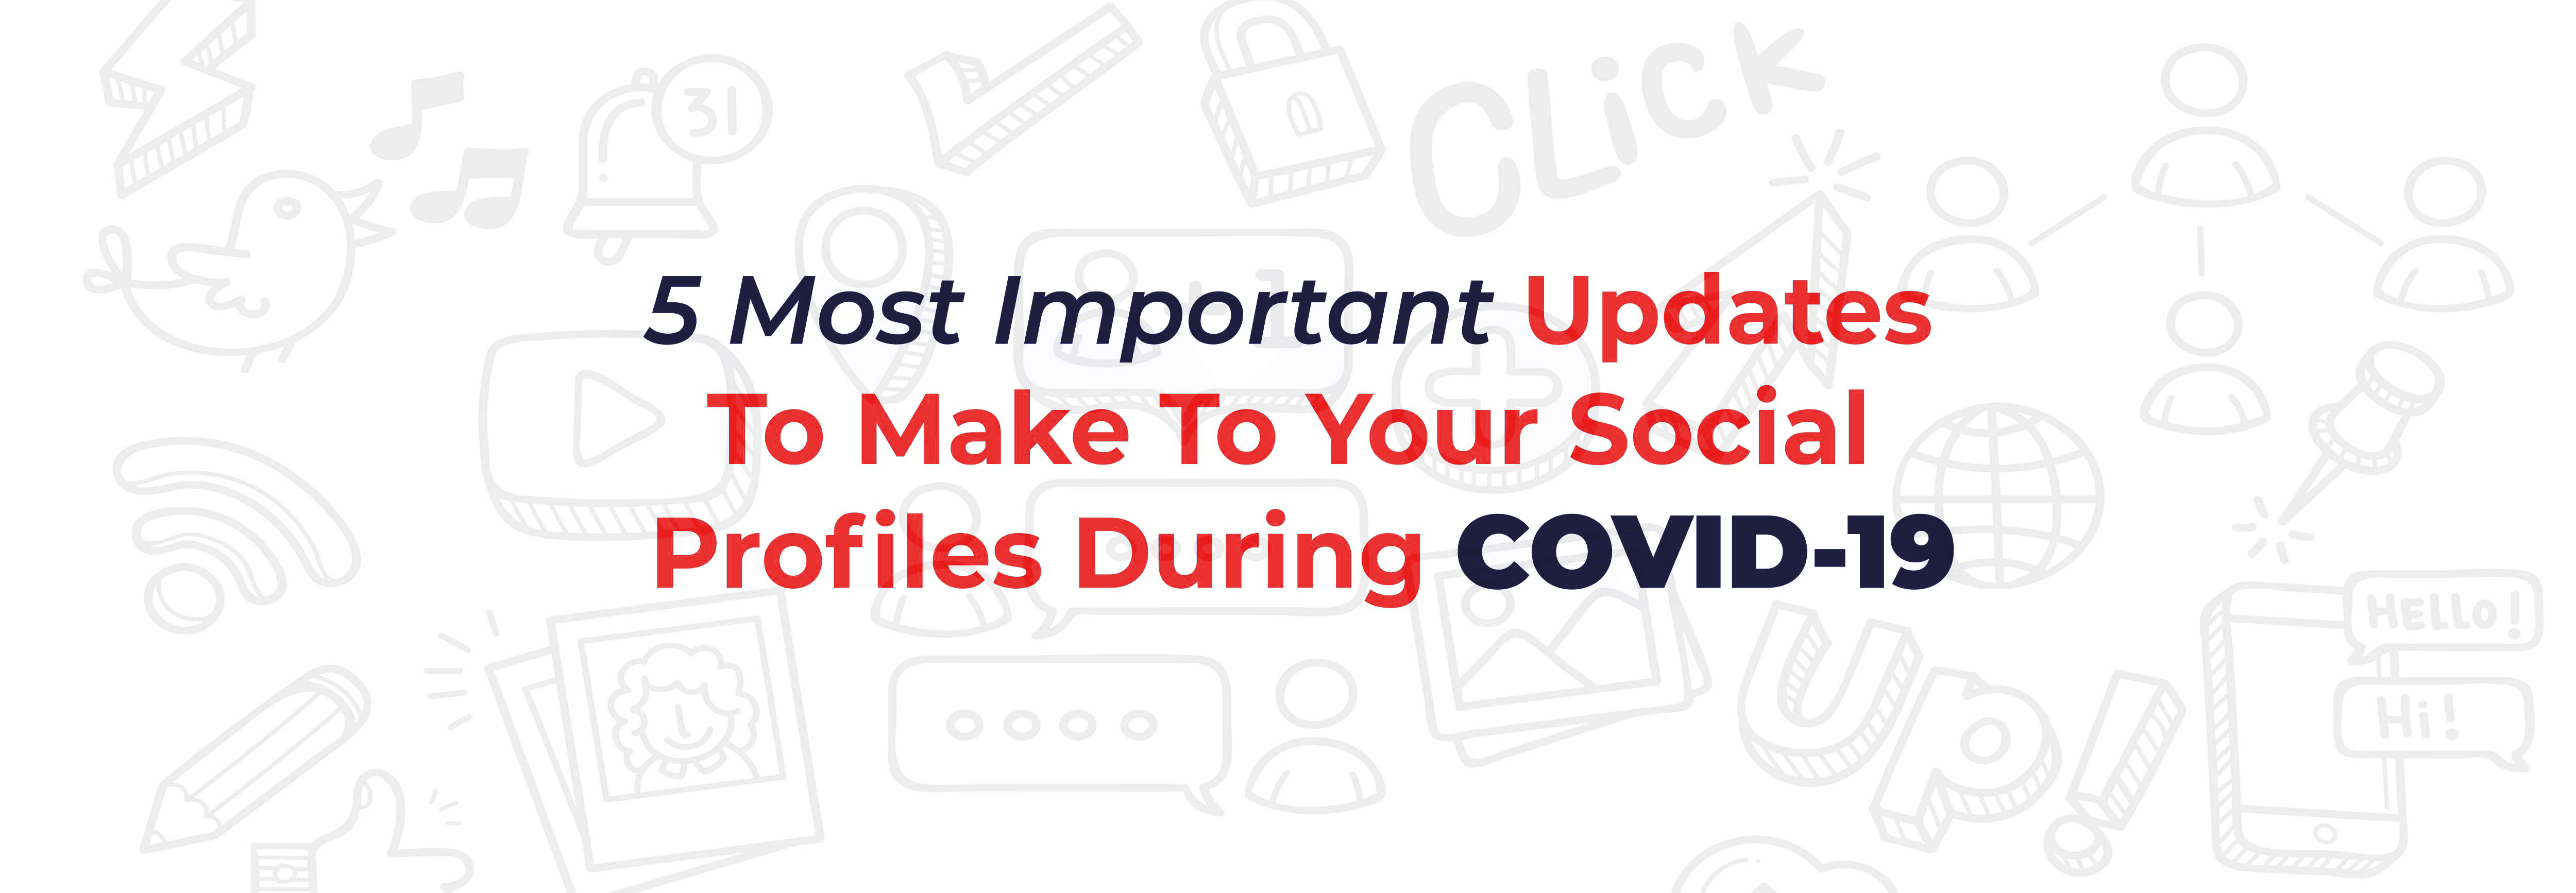 5 Most Important Updates To Make To Your Social Profiles During COVID-19